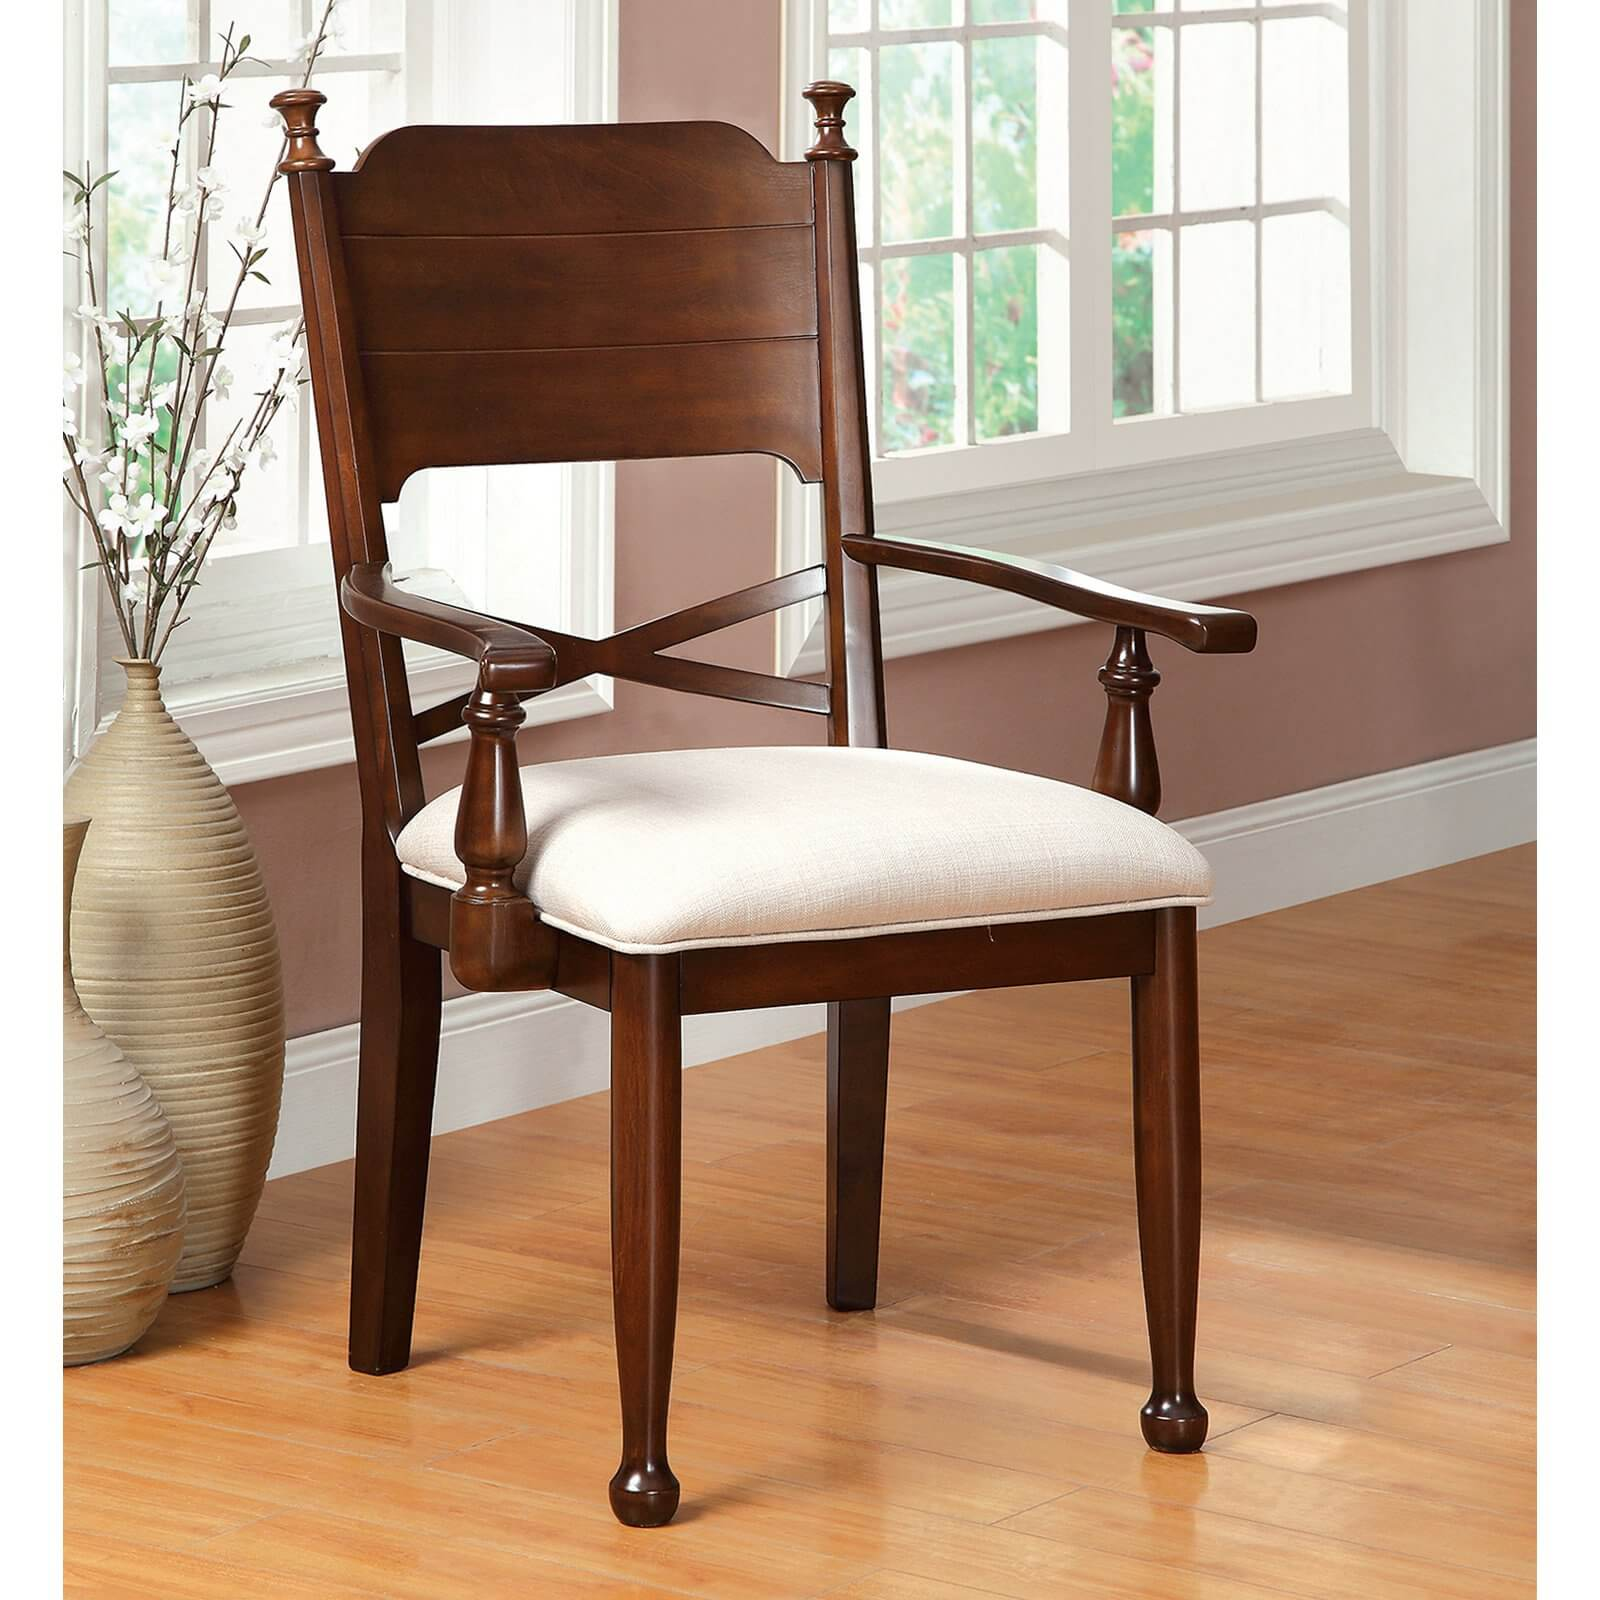 The arm chair features, as one would guess, arms, in addition to the traditional side chair design. Although the frame style can morph the way the arms appear on the chair, the most common design, as pictured here, attaches the arms to the back and seat via narrow pieces.